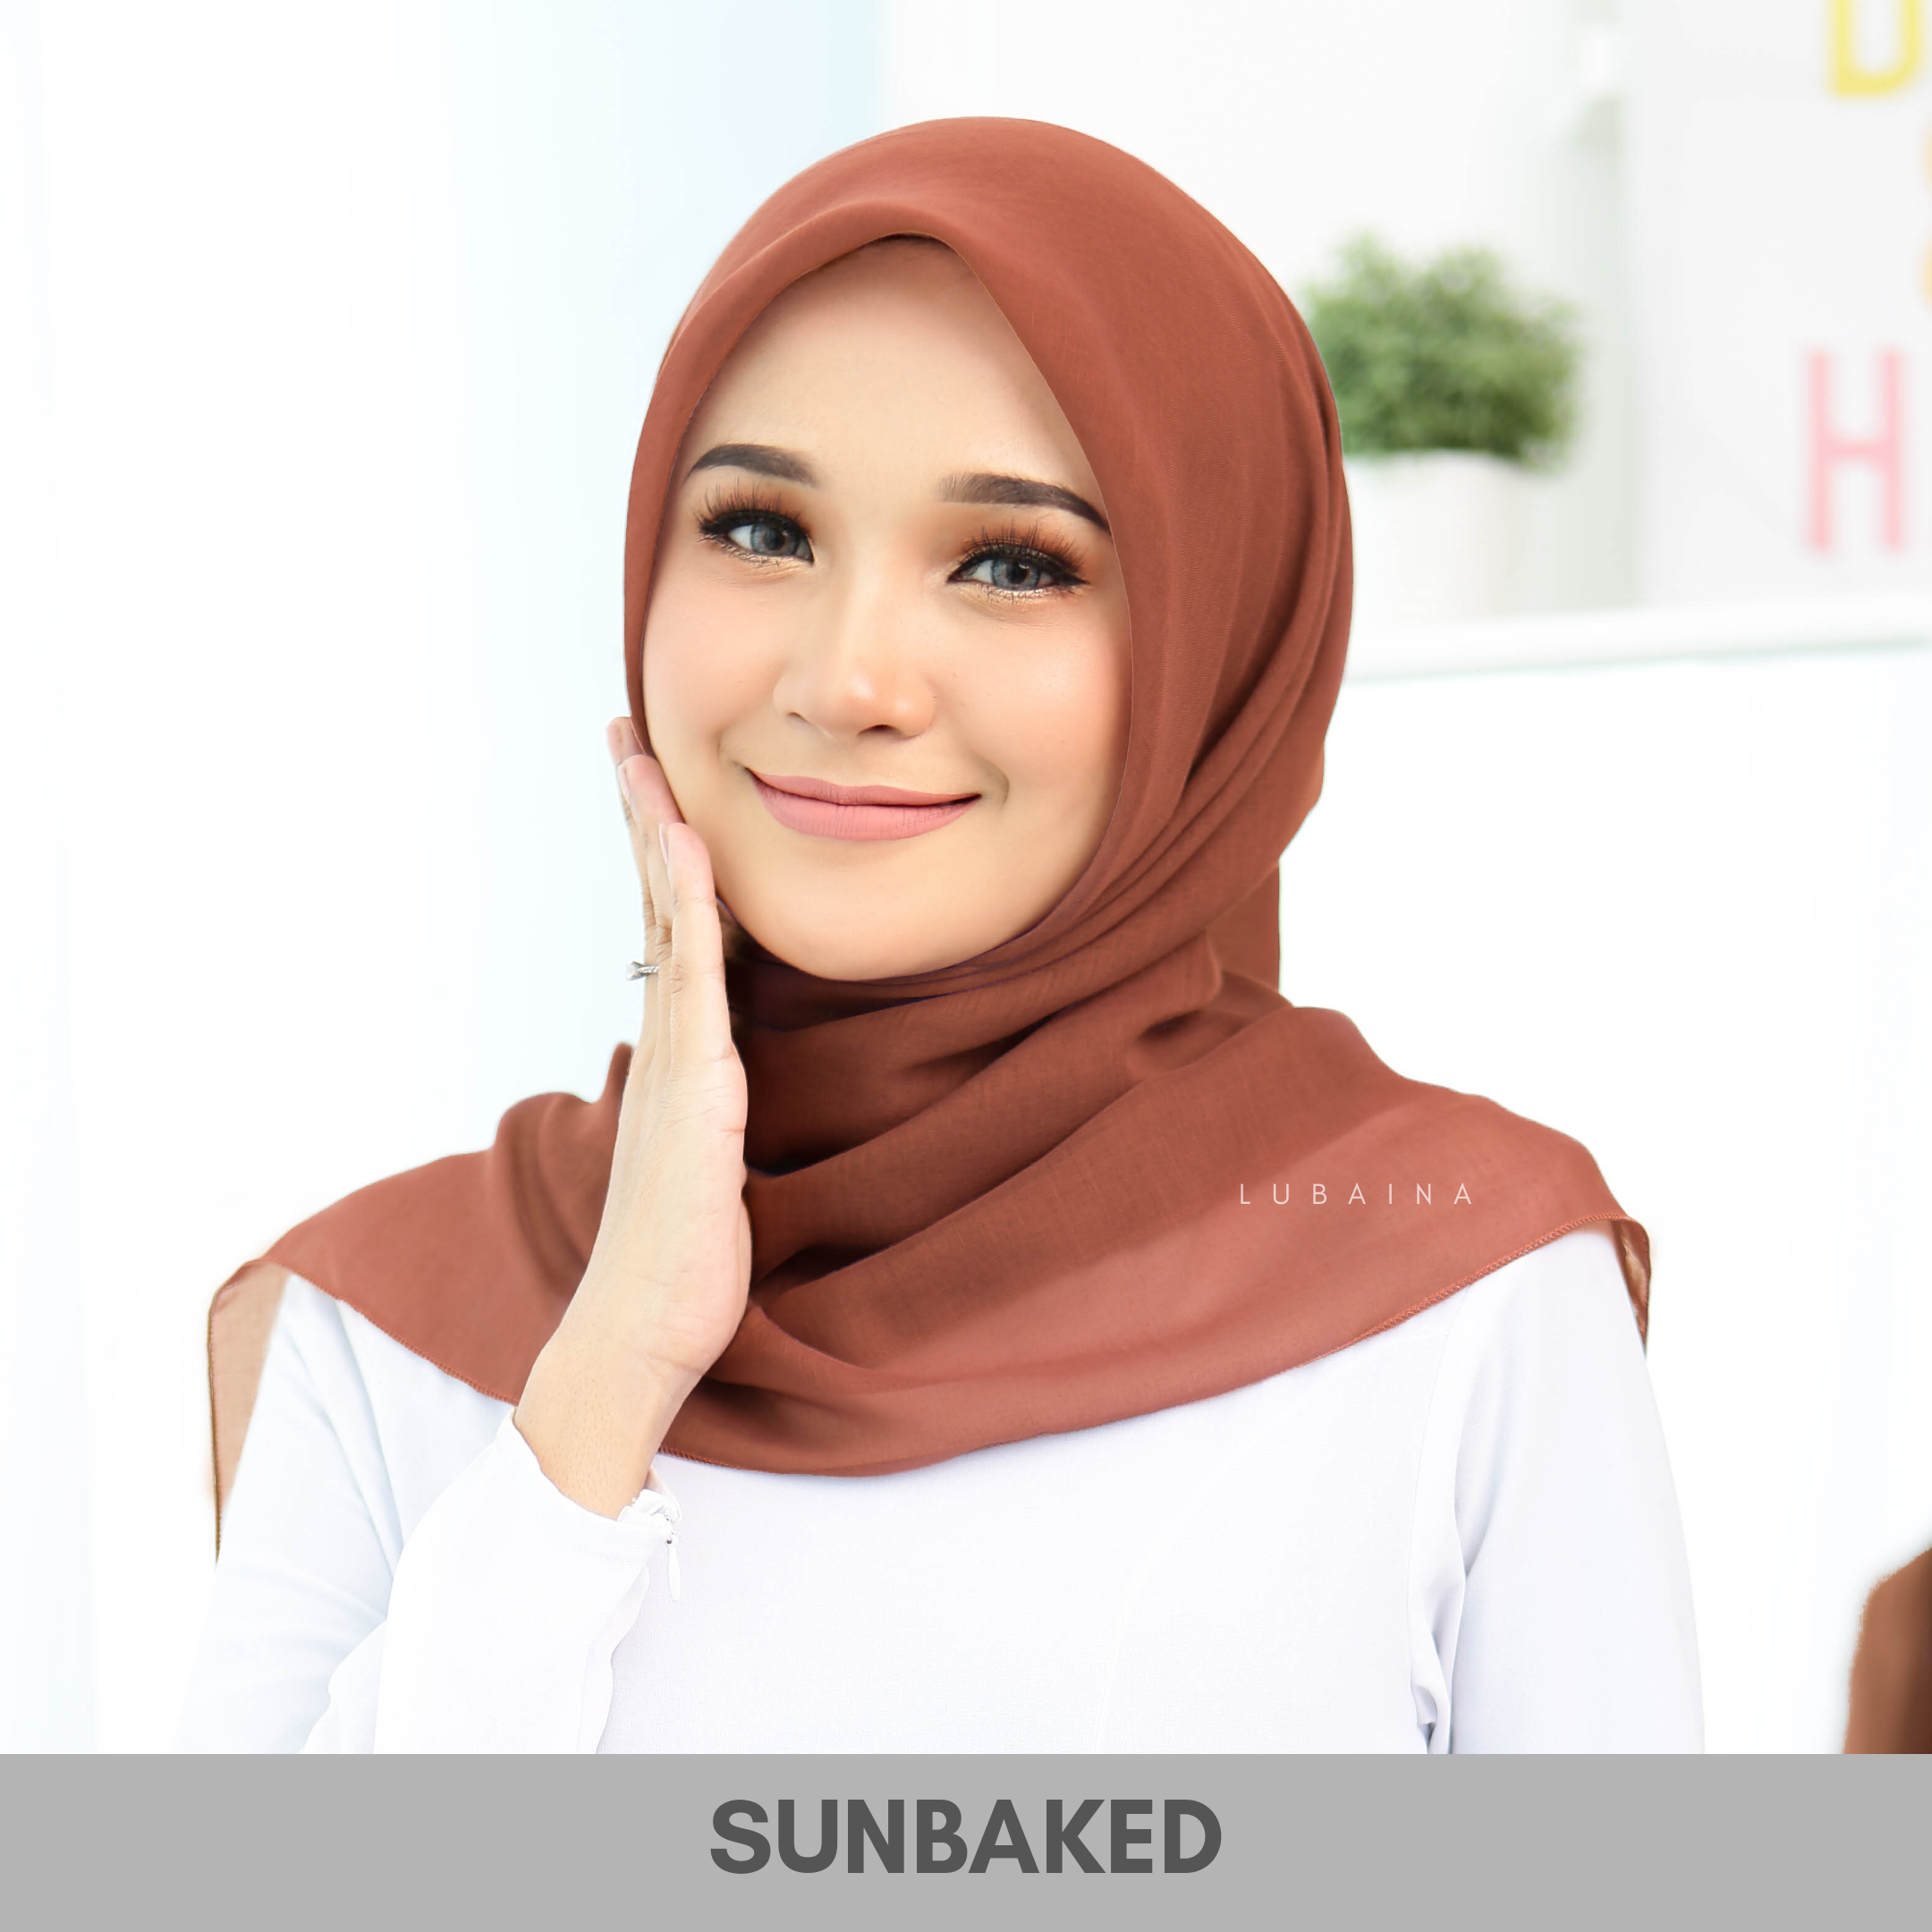 Bawal-Cotton-Lubaina-Sunbaked.png